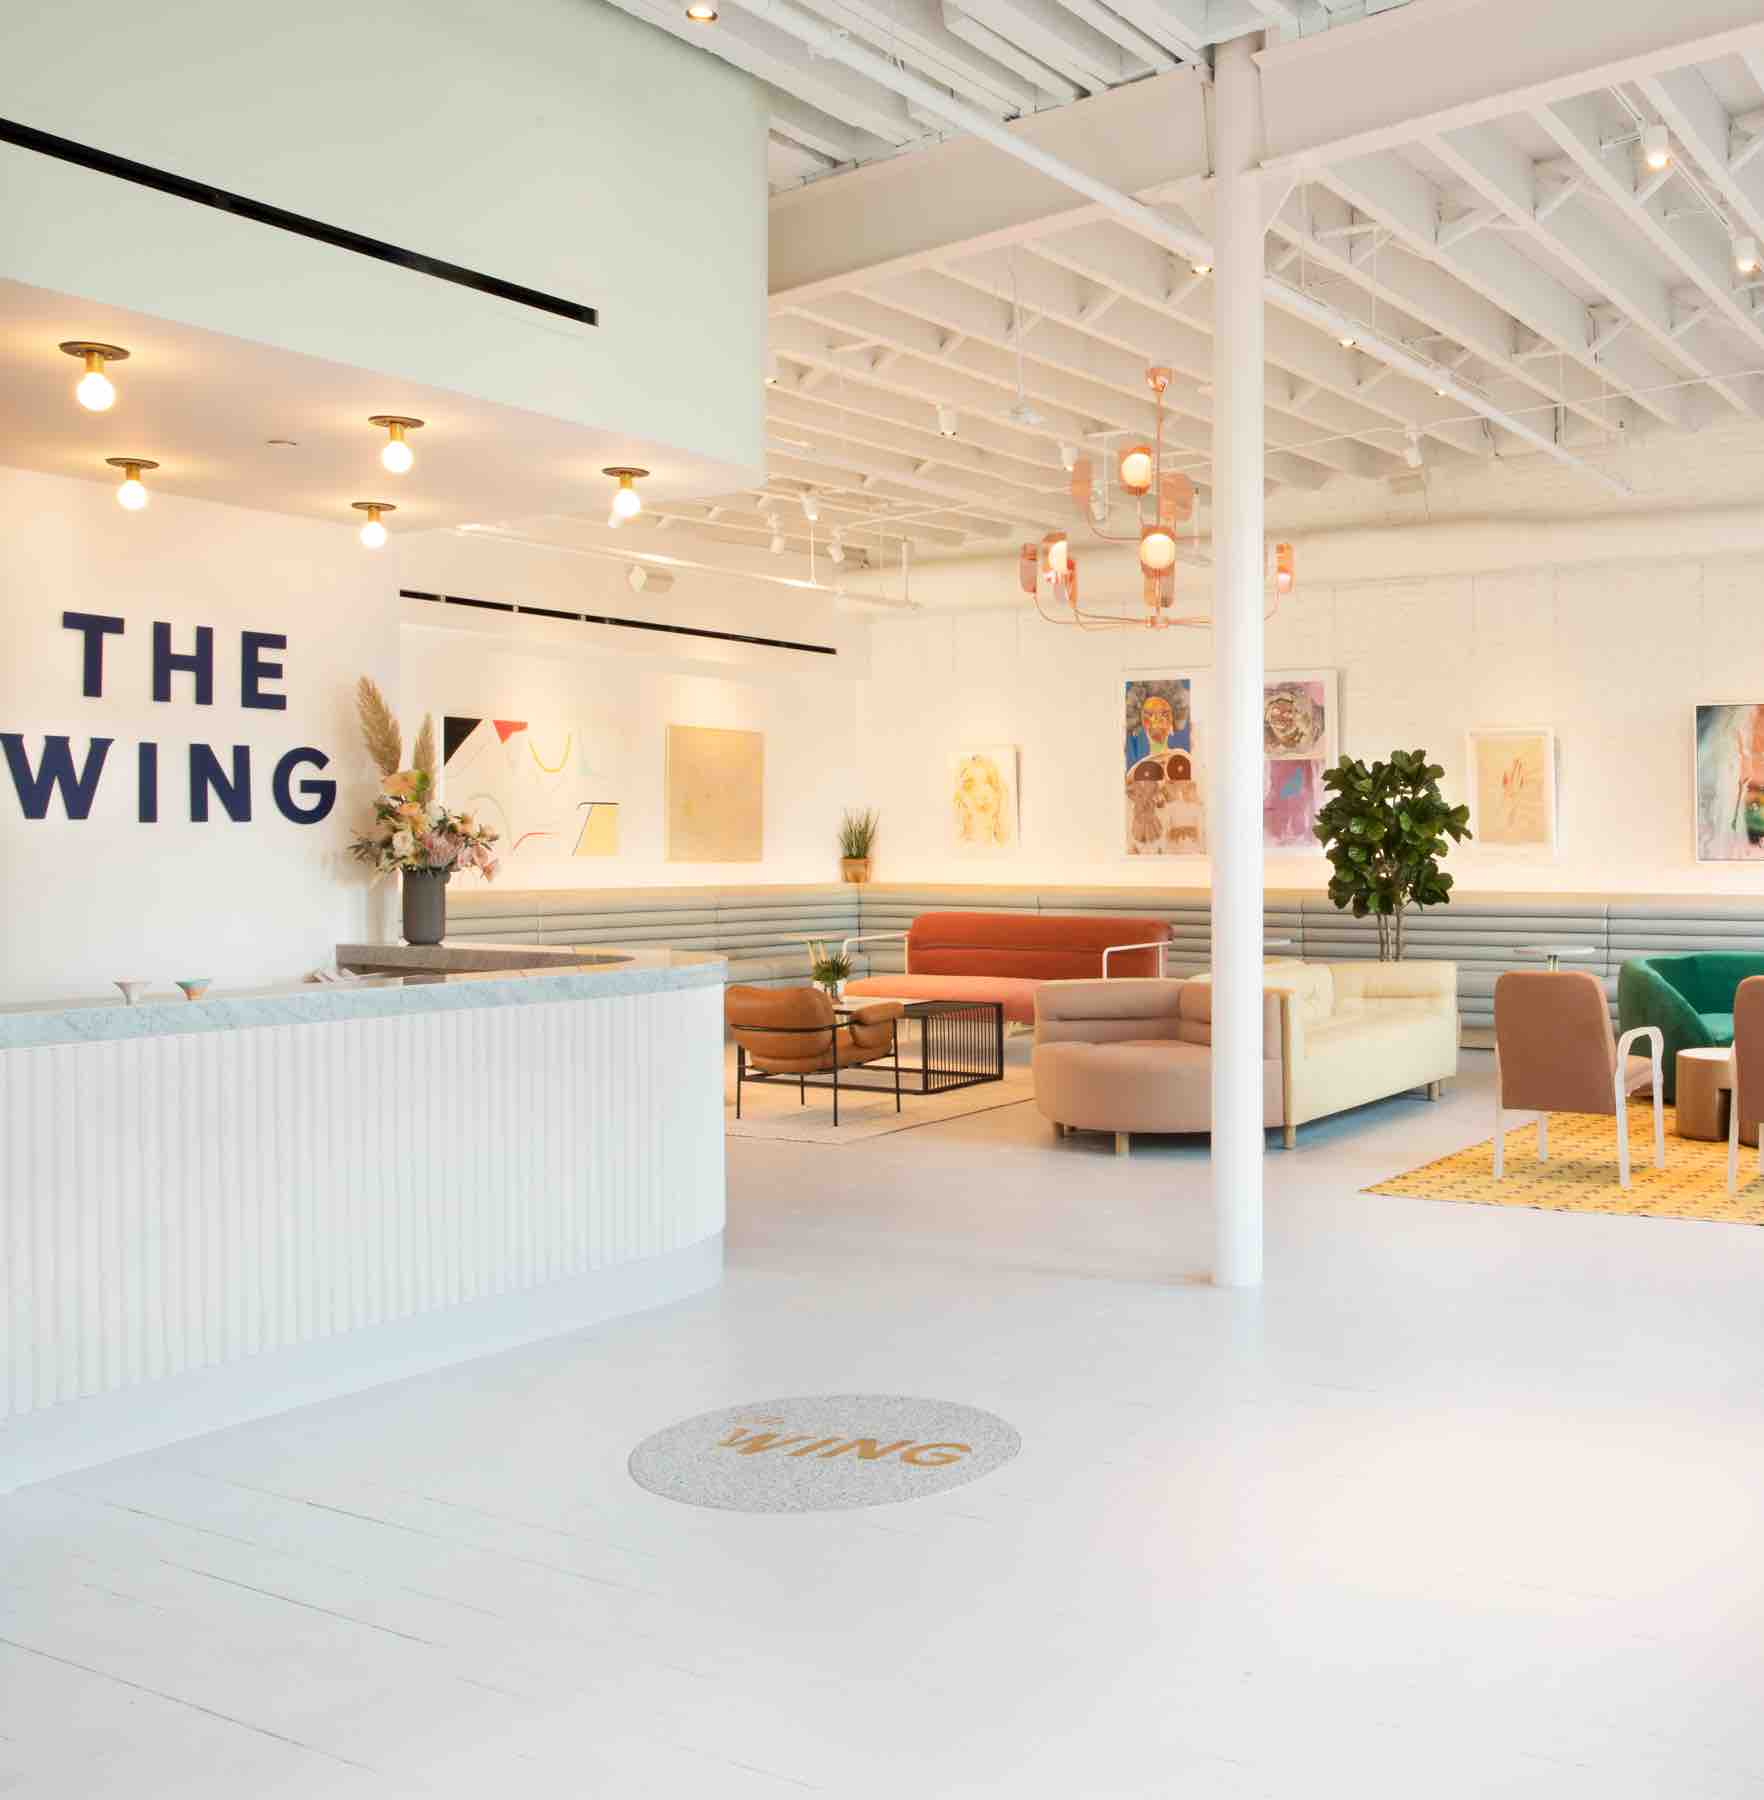 The Wing is hiring a graphic intern, head over to DNAMAG.co for details.